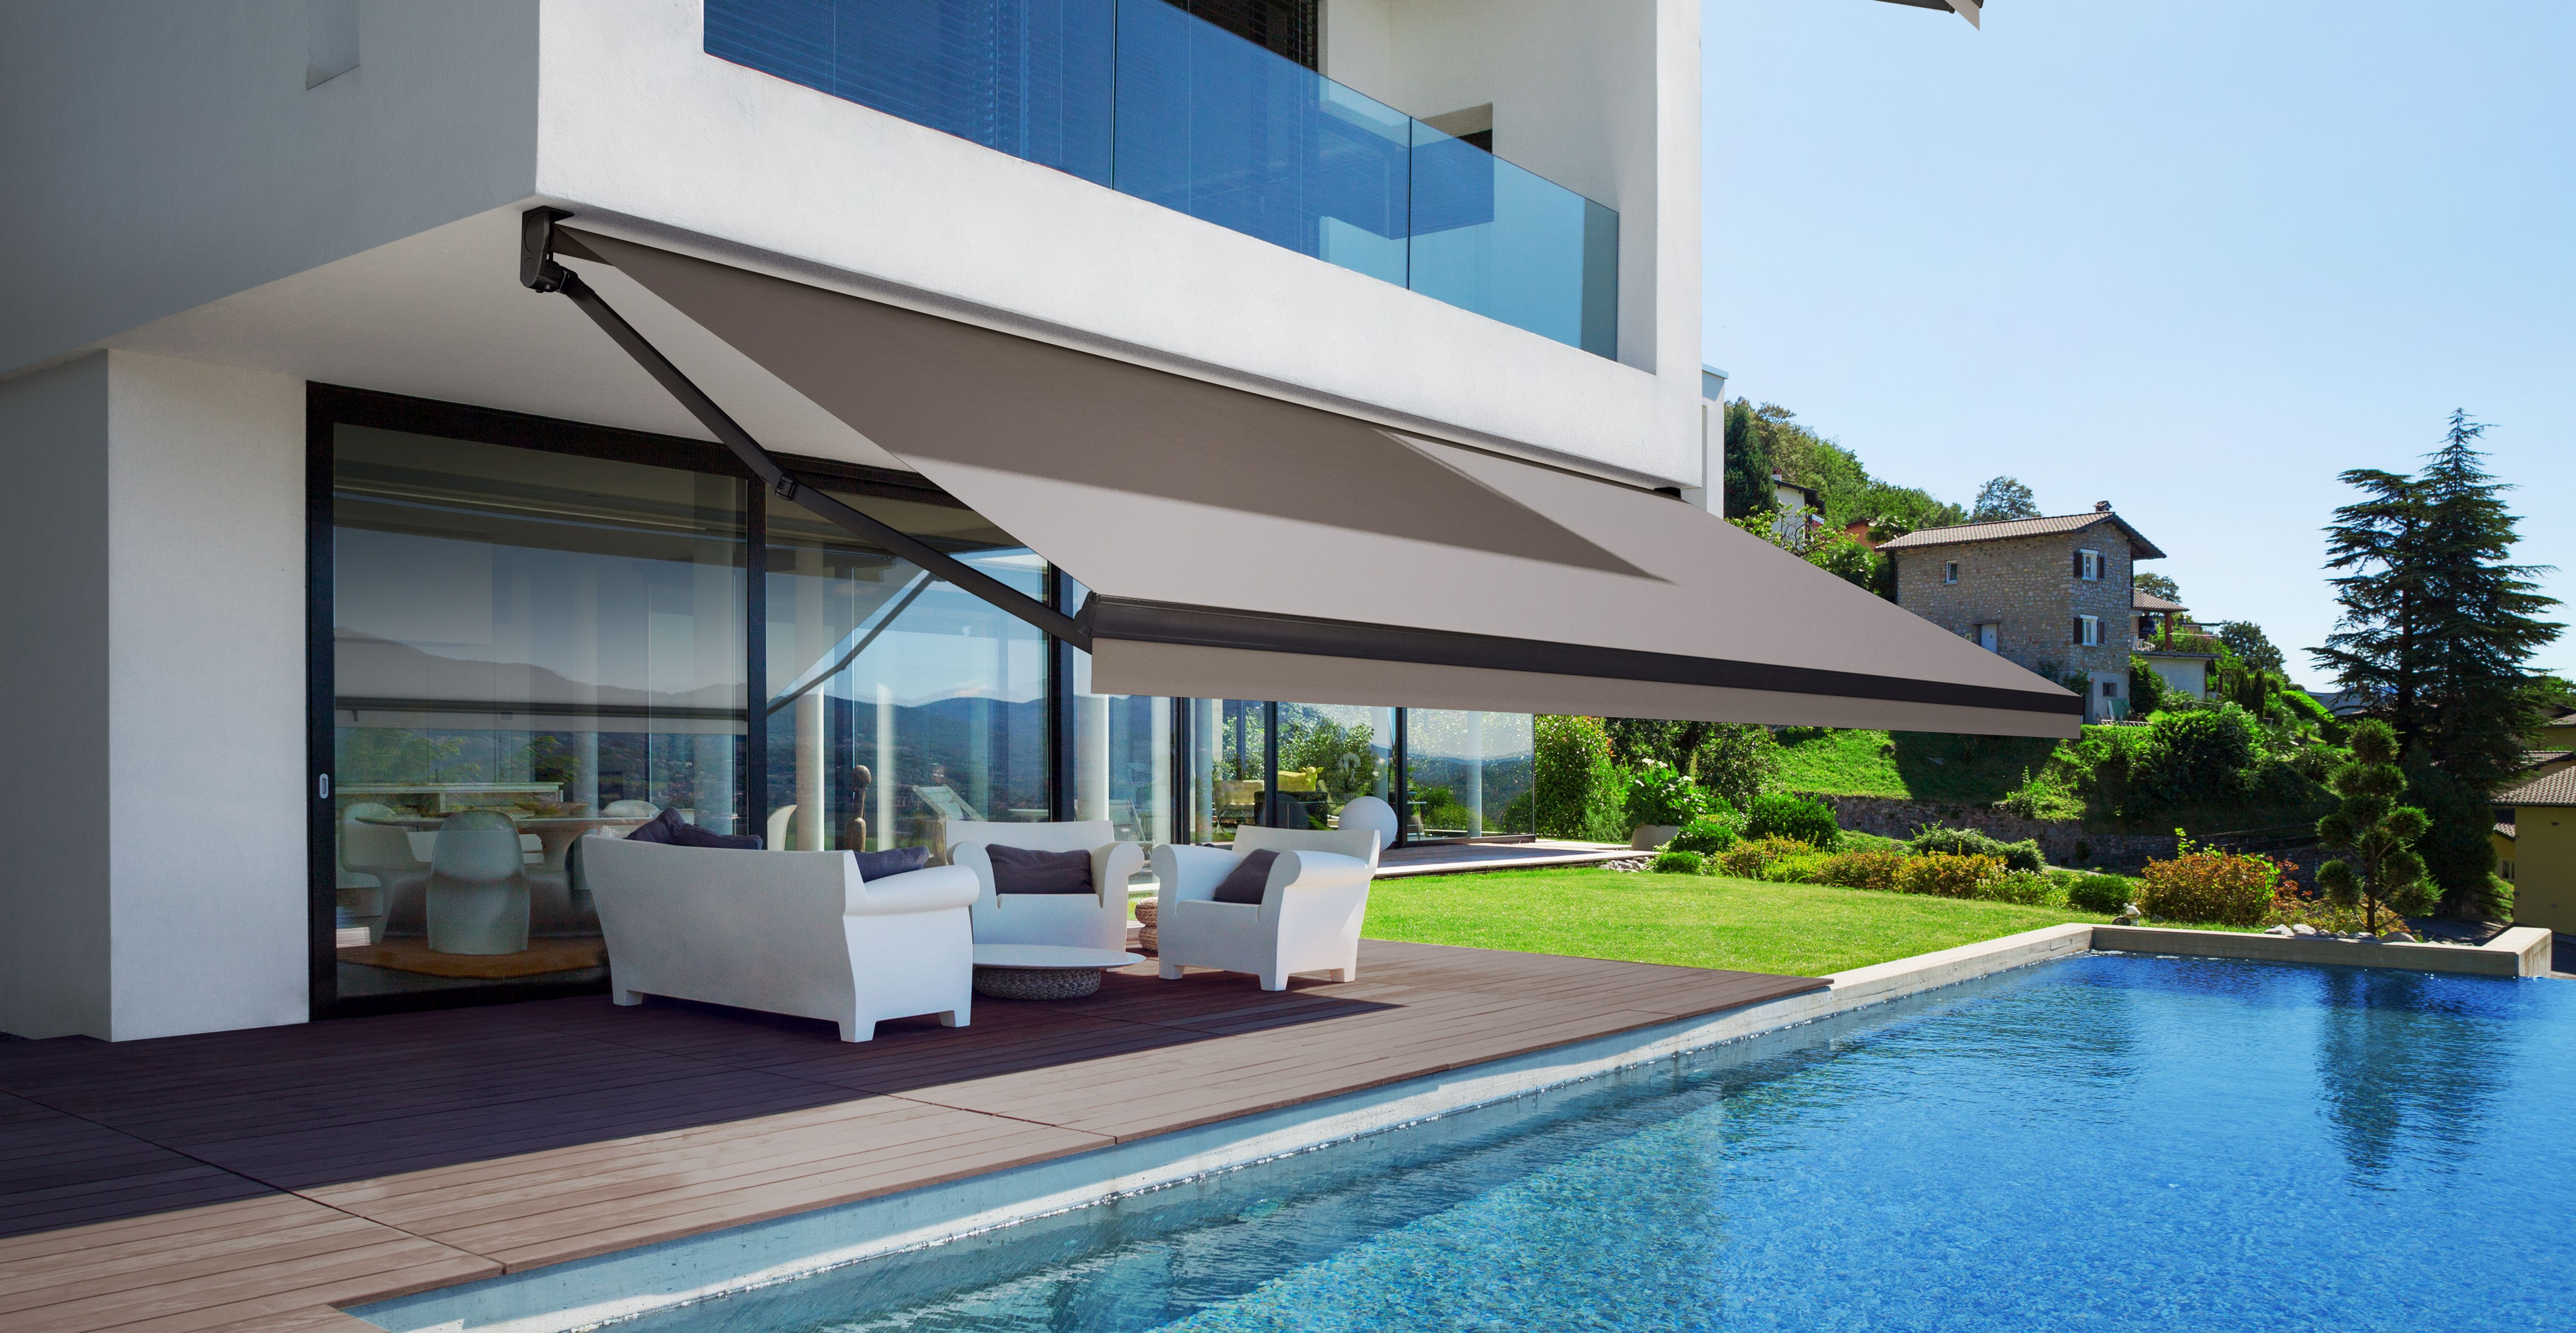 retractable awnings and canopies